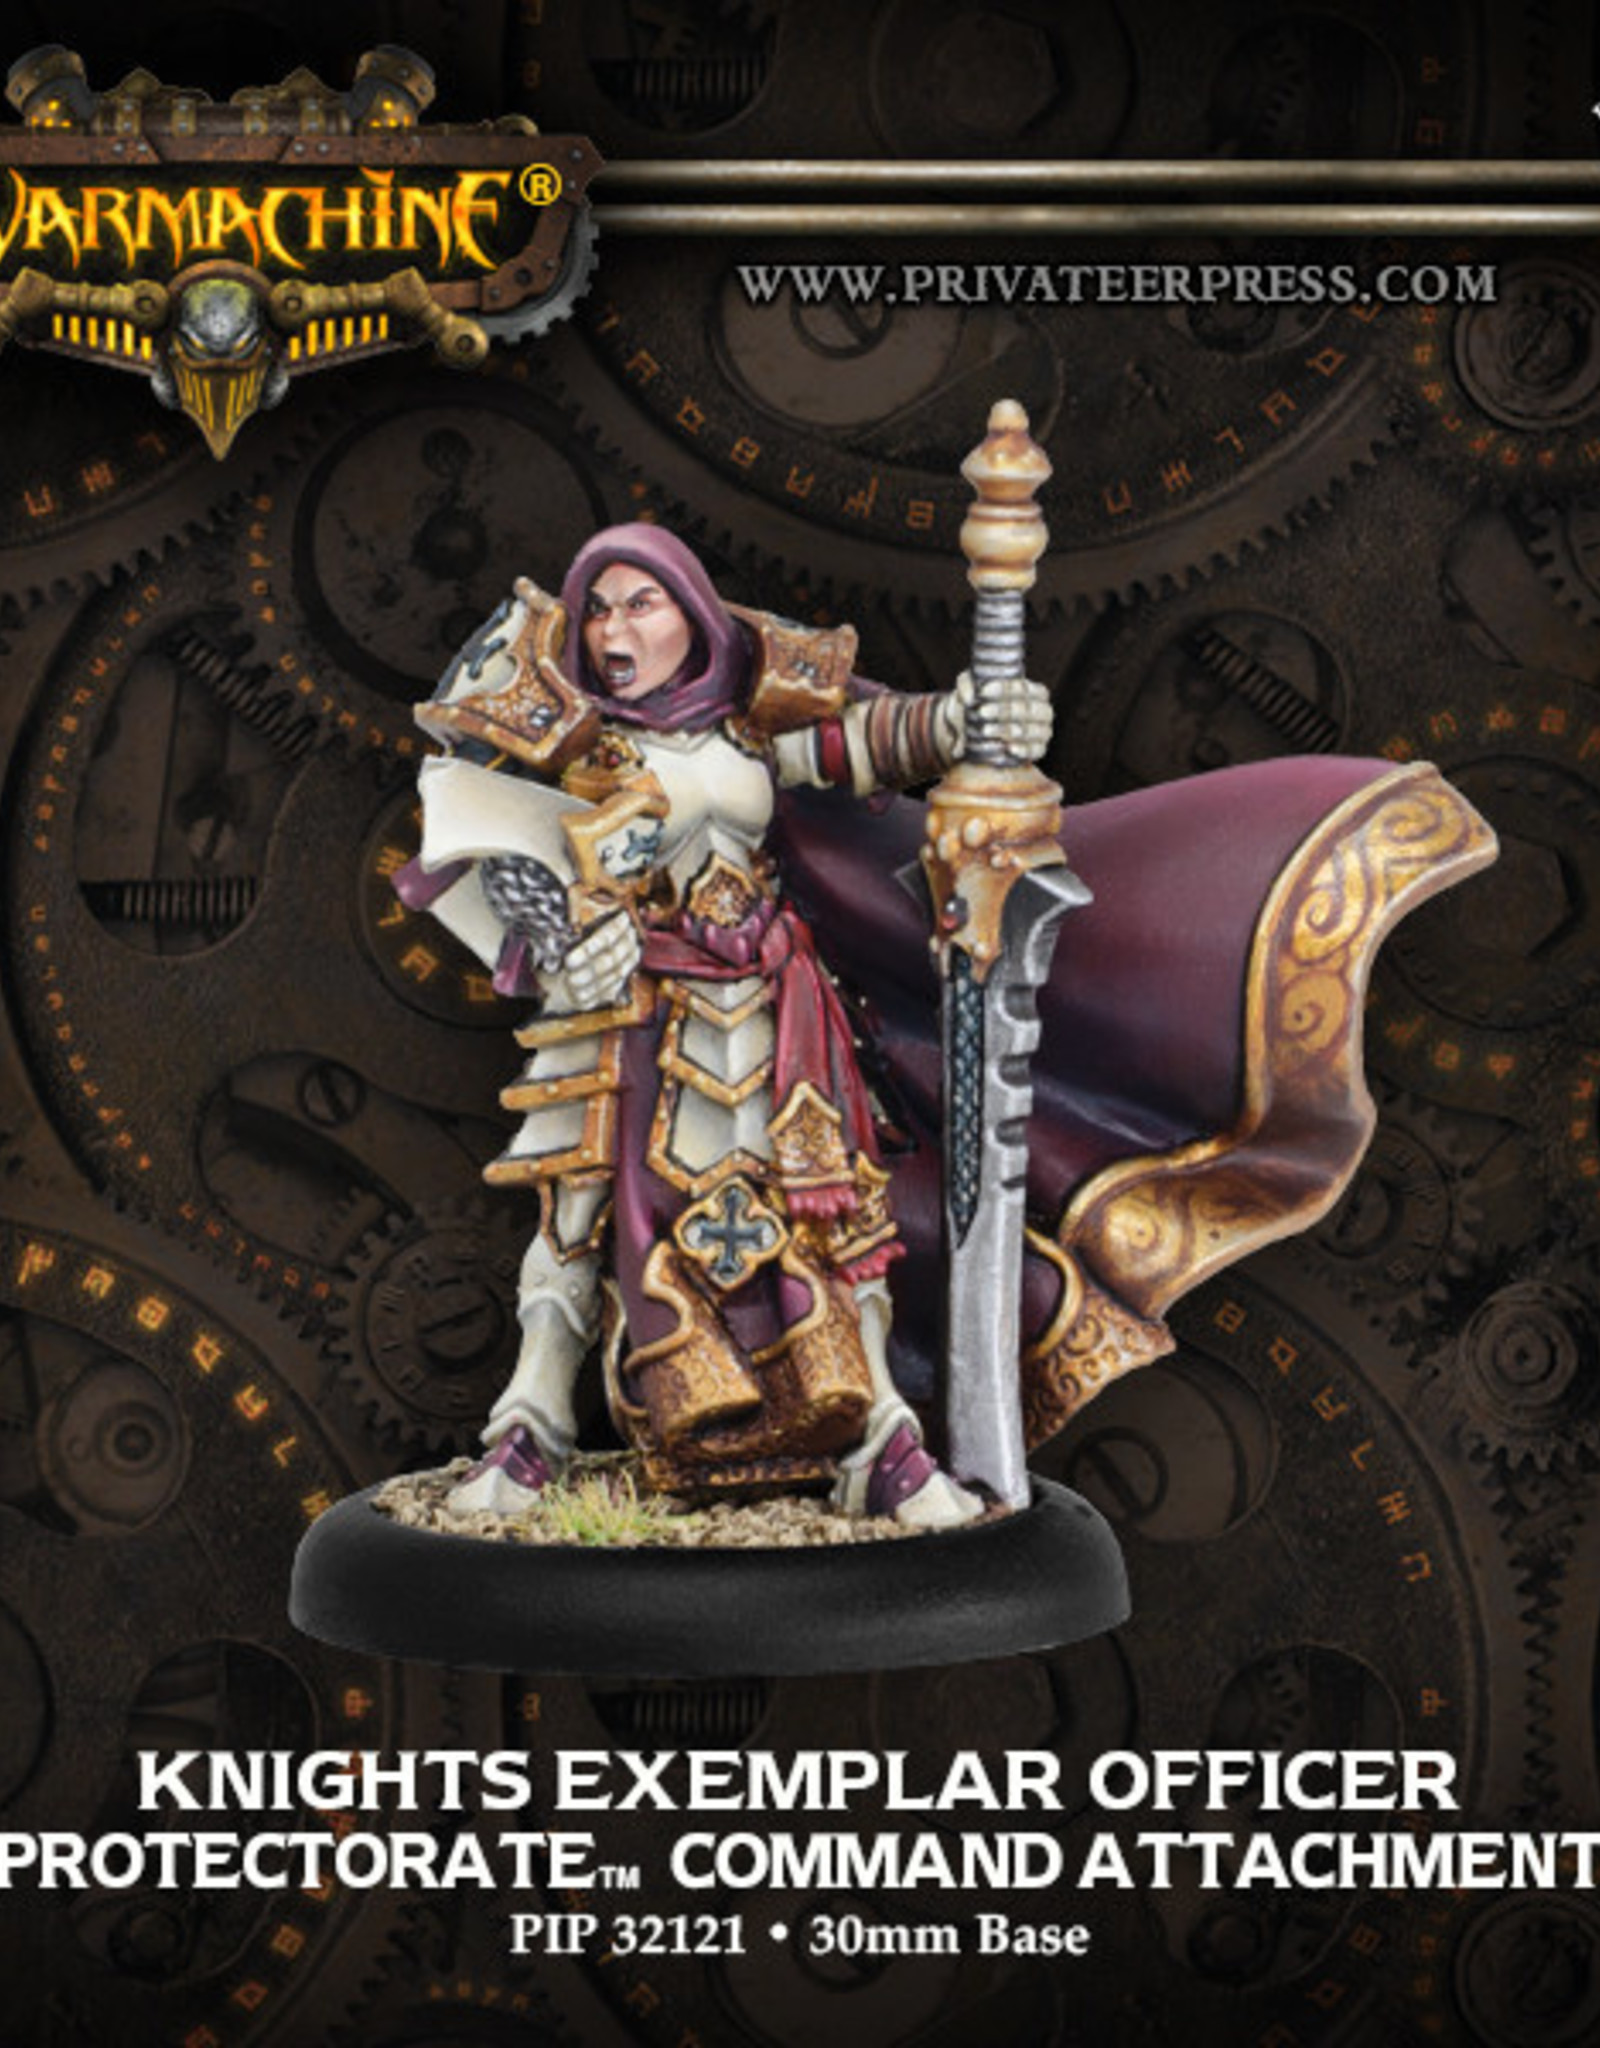 Warmachine Protectorate - Knights Exemplar Officer